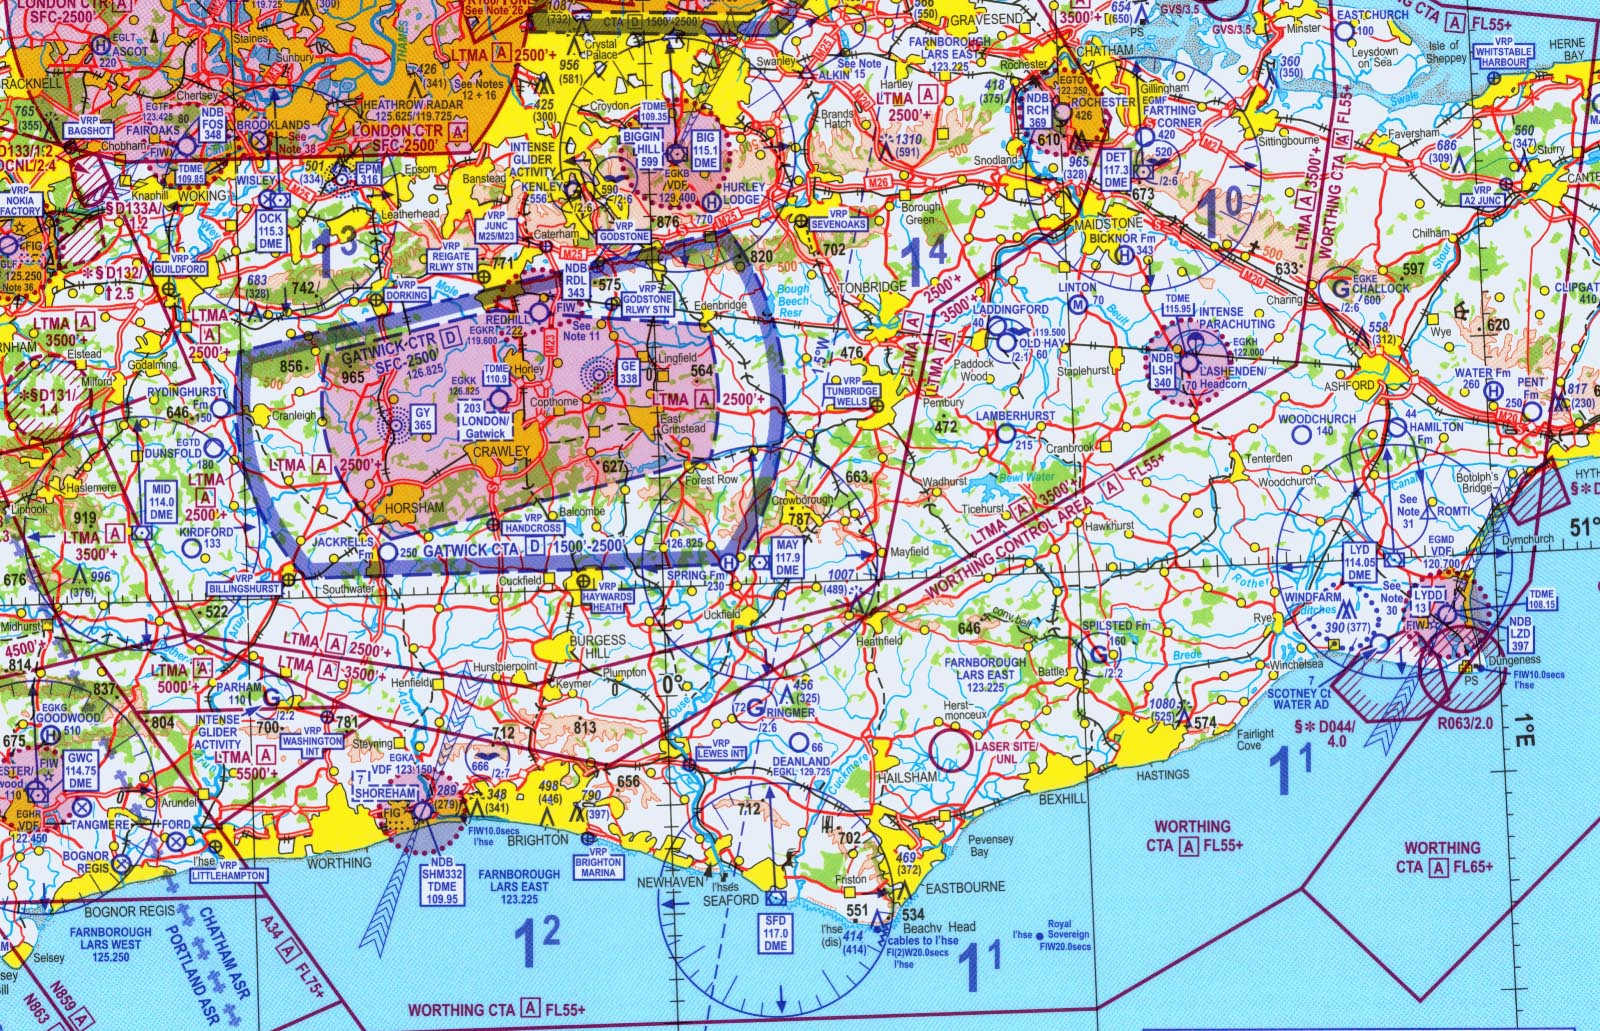 learn to fly helicopter uk with Dmzylwnoyxj0cy11aw on 131002 Baby Boy Born On Helicopter moreover Easa Certification Bell 505 Jet Ranger X together with Pm Launches New Hyper Microlight besides Helitrak Demos New R22 Safety Devices furthermore T Rex Drawing Reference.